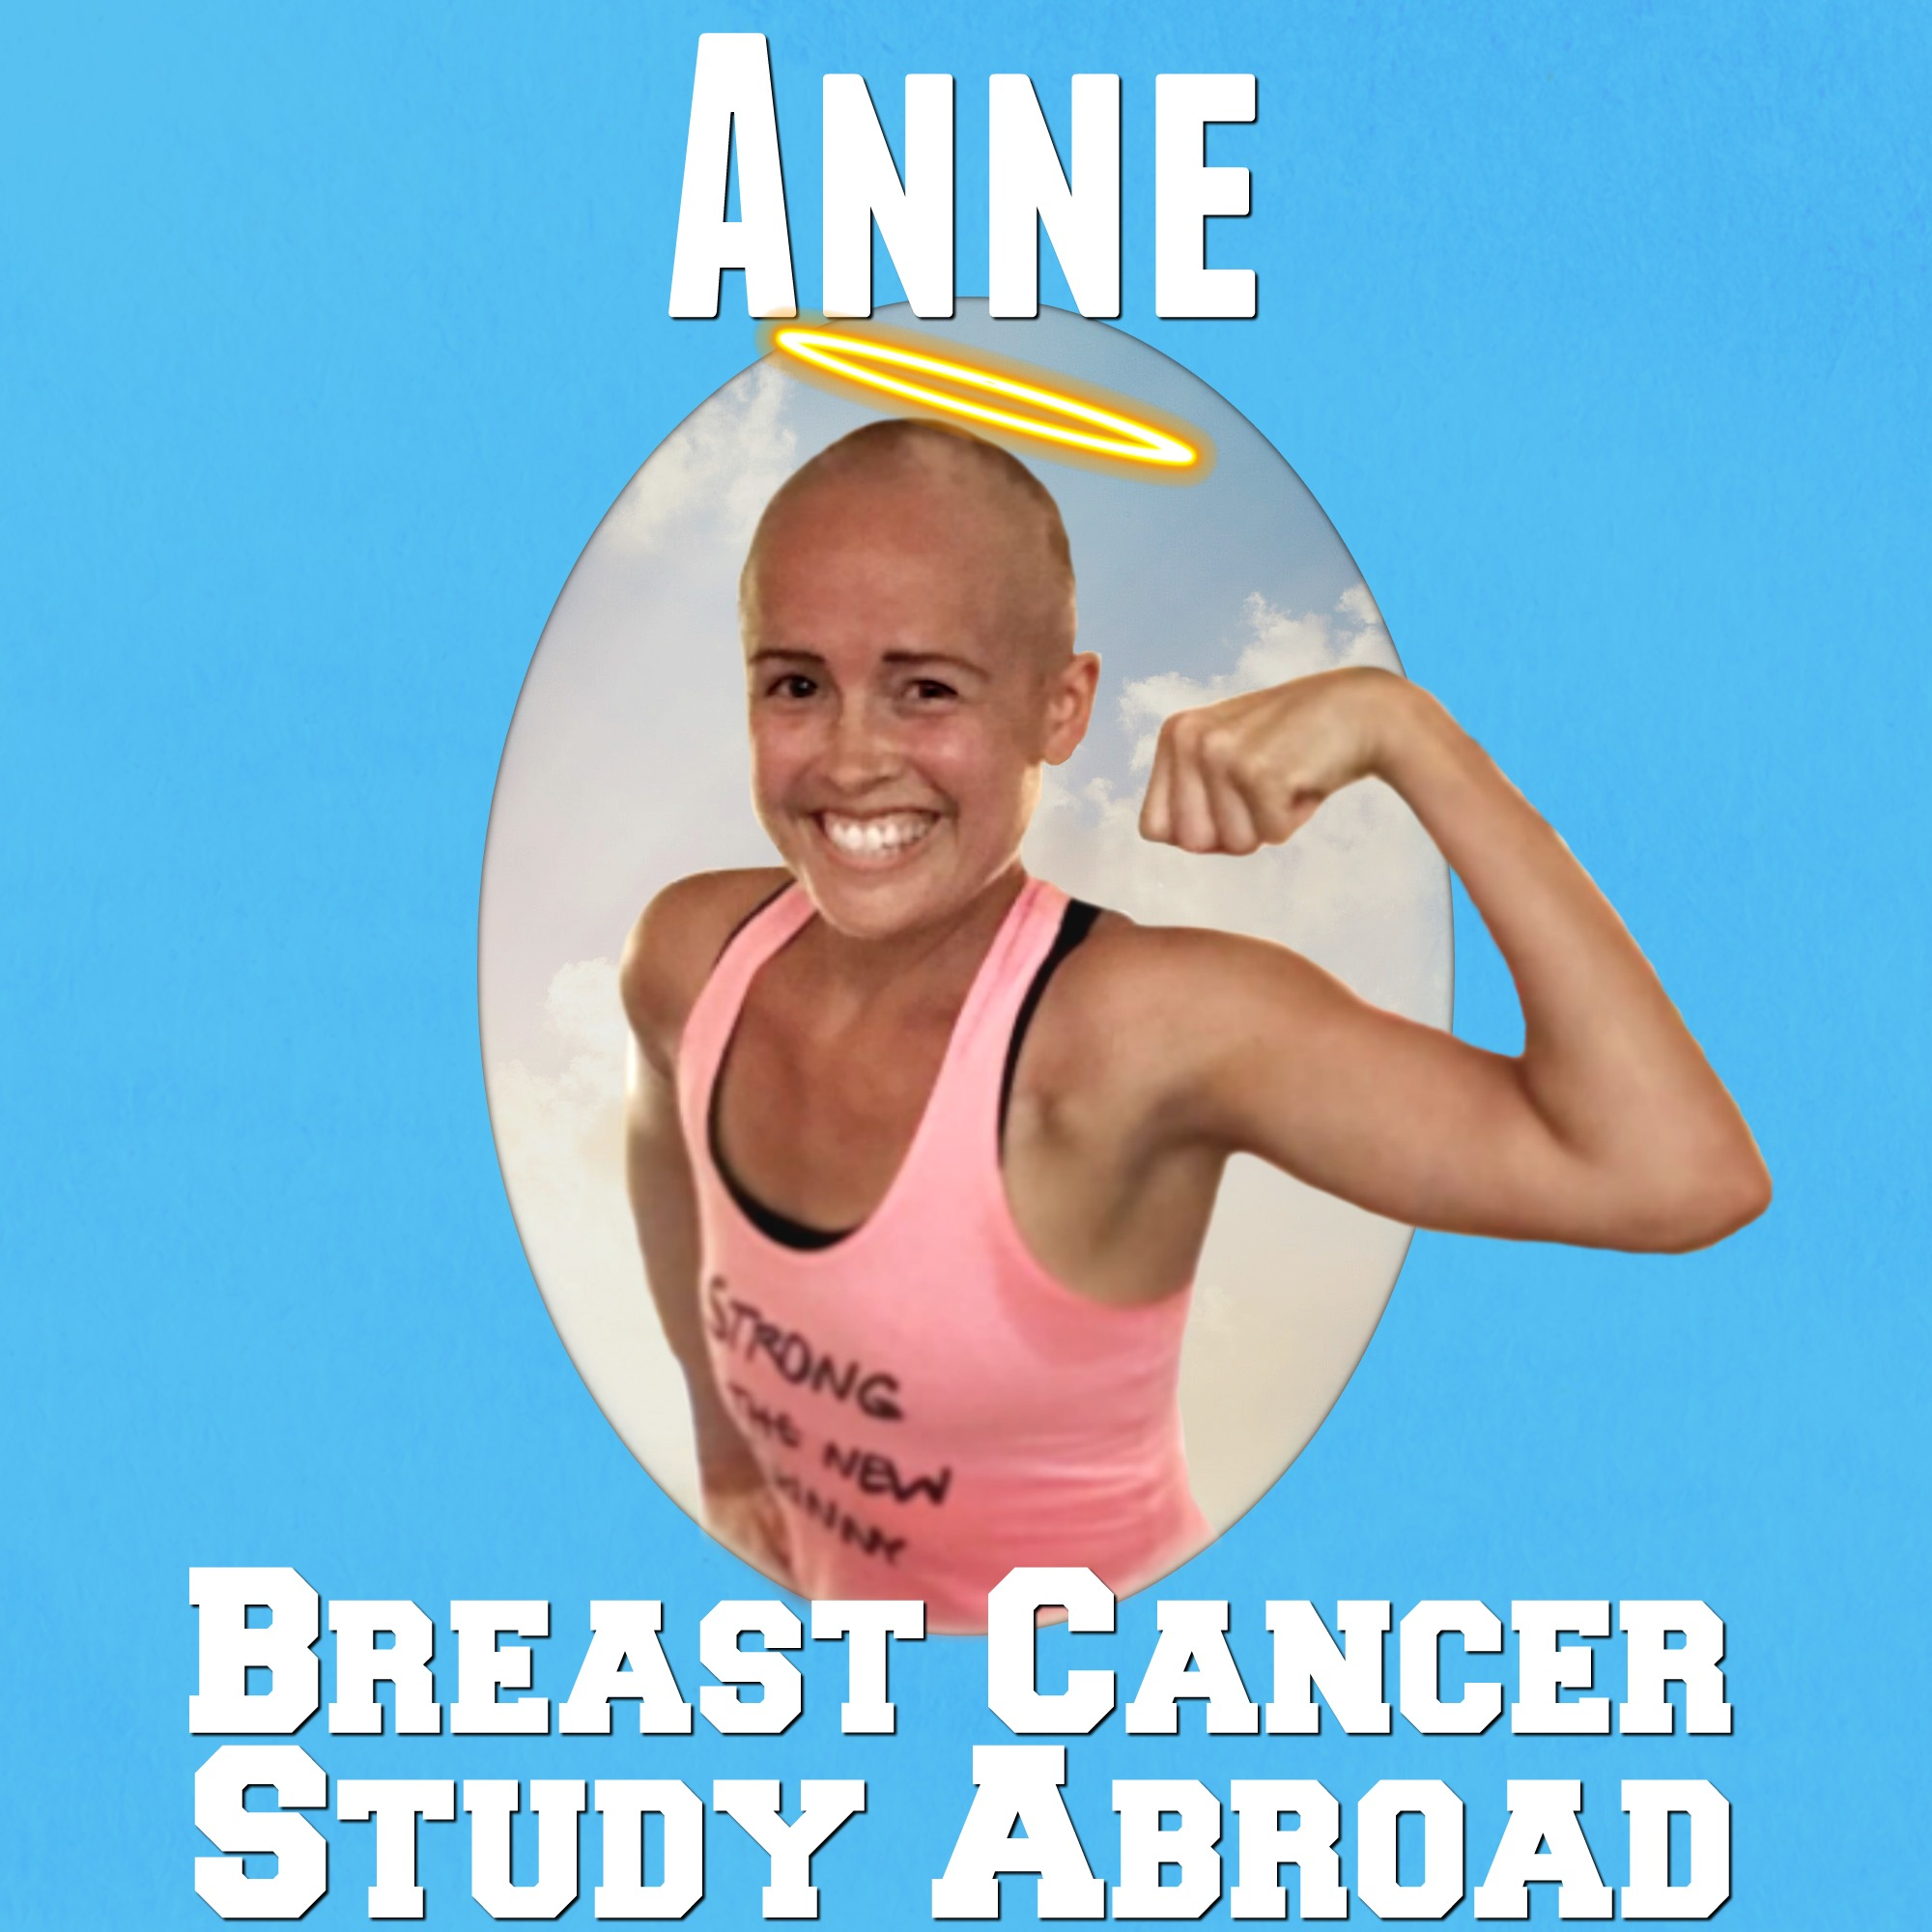 Anne_Pursell_Fit_Fearless_Mom_CancerGrad_Study_Abroad_Yearbook